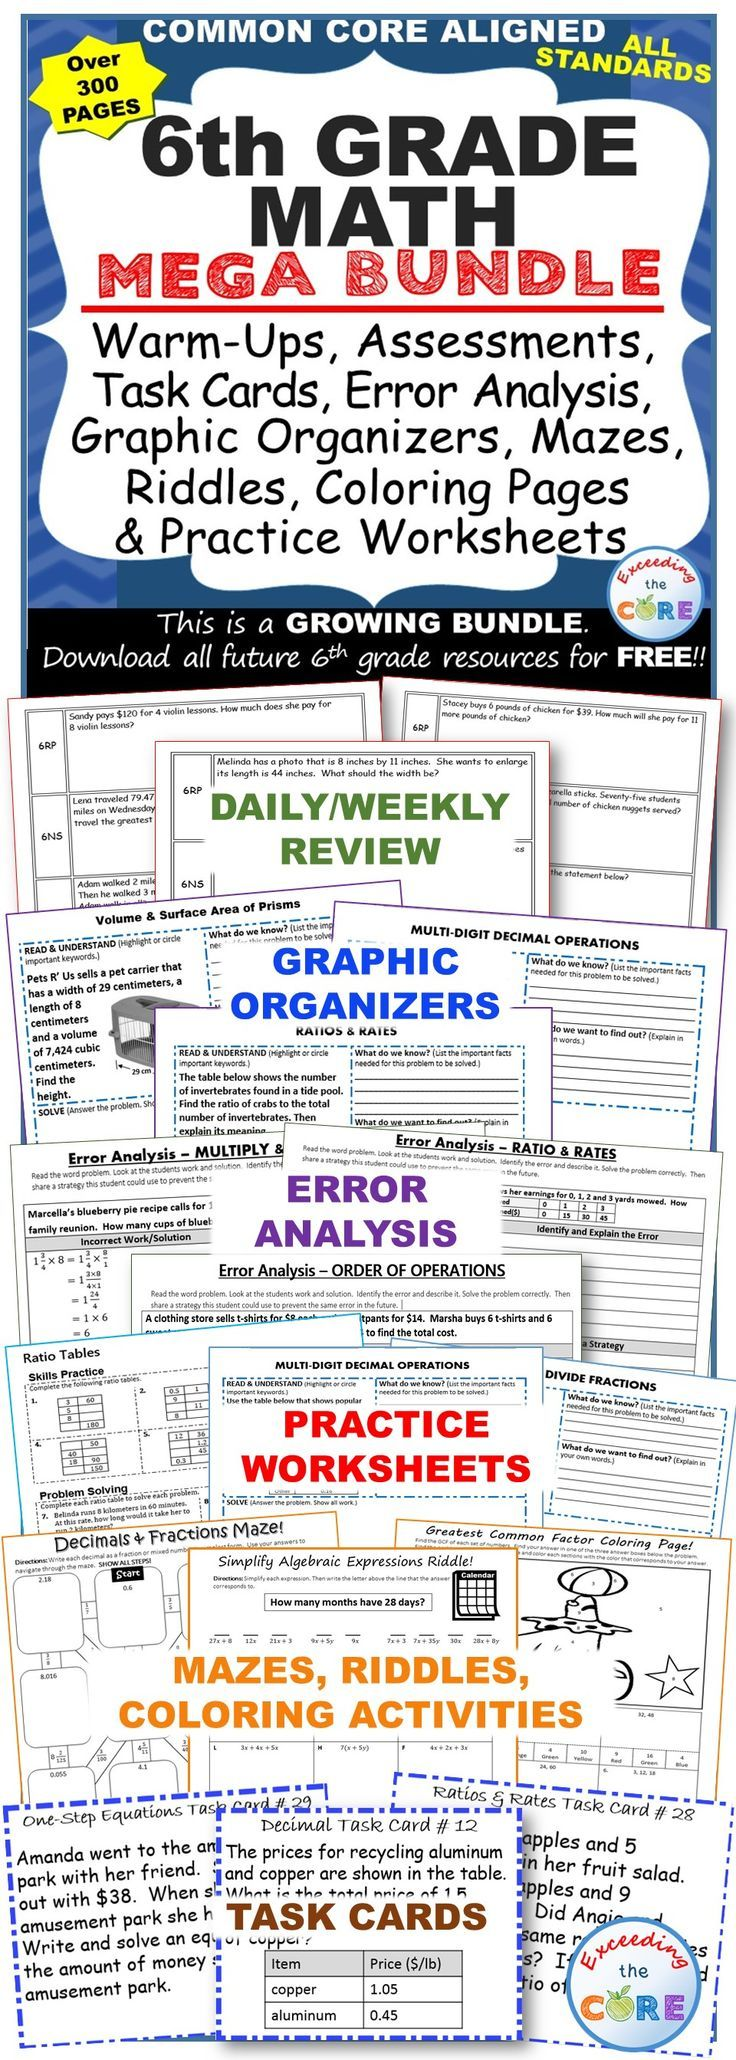 6th grade common core math printable worksheets